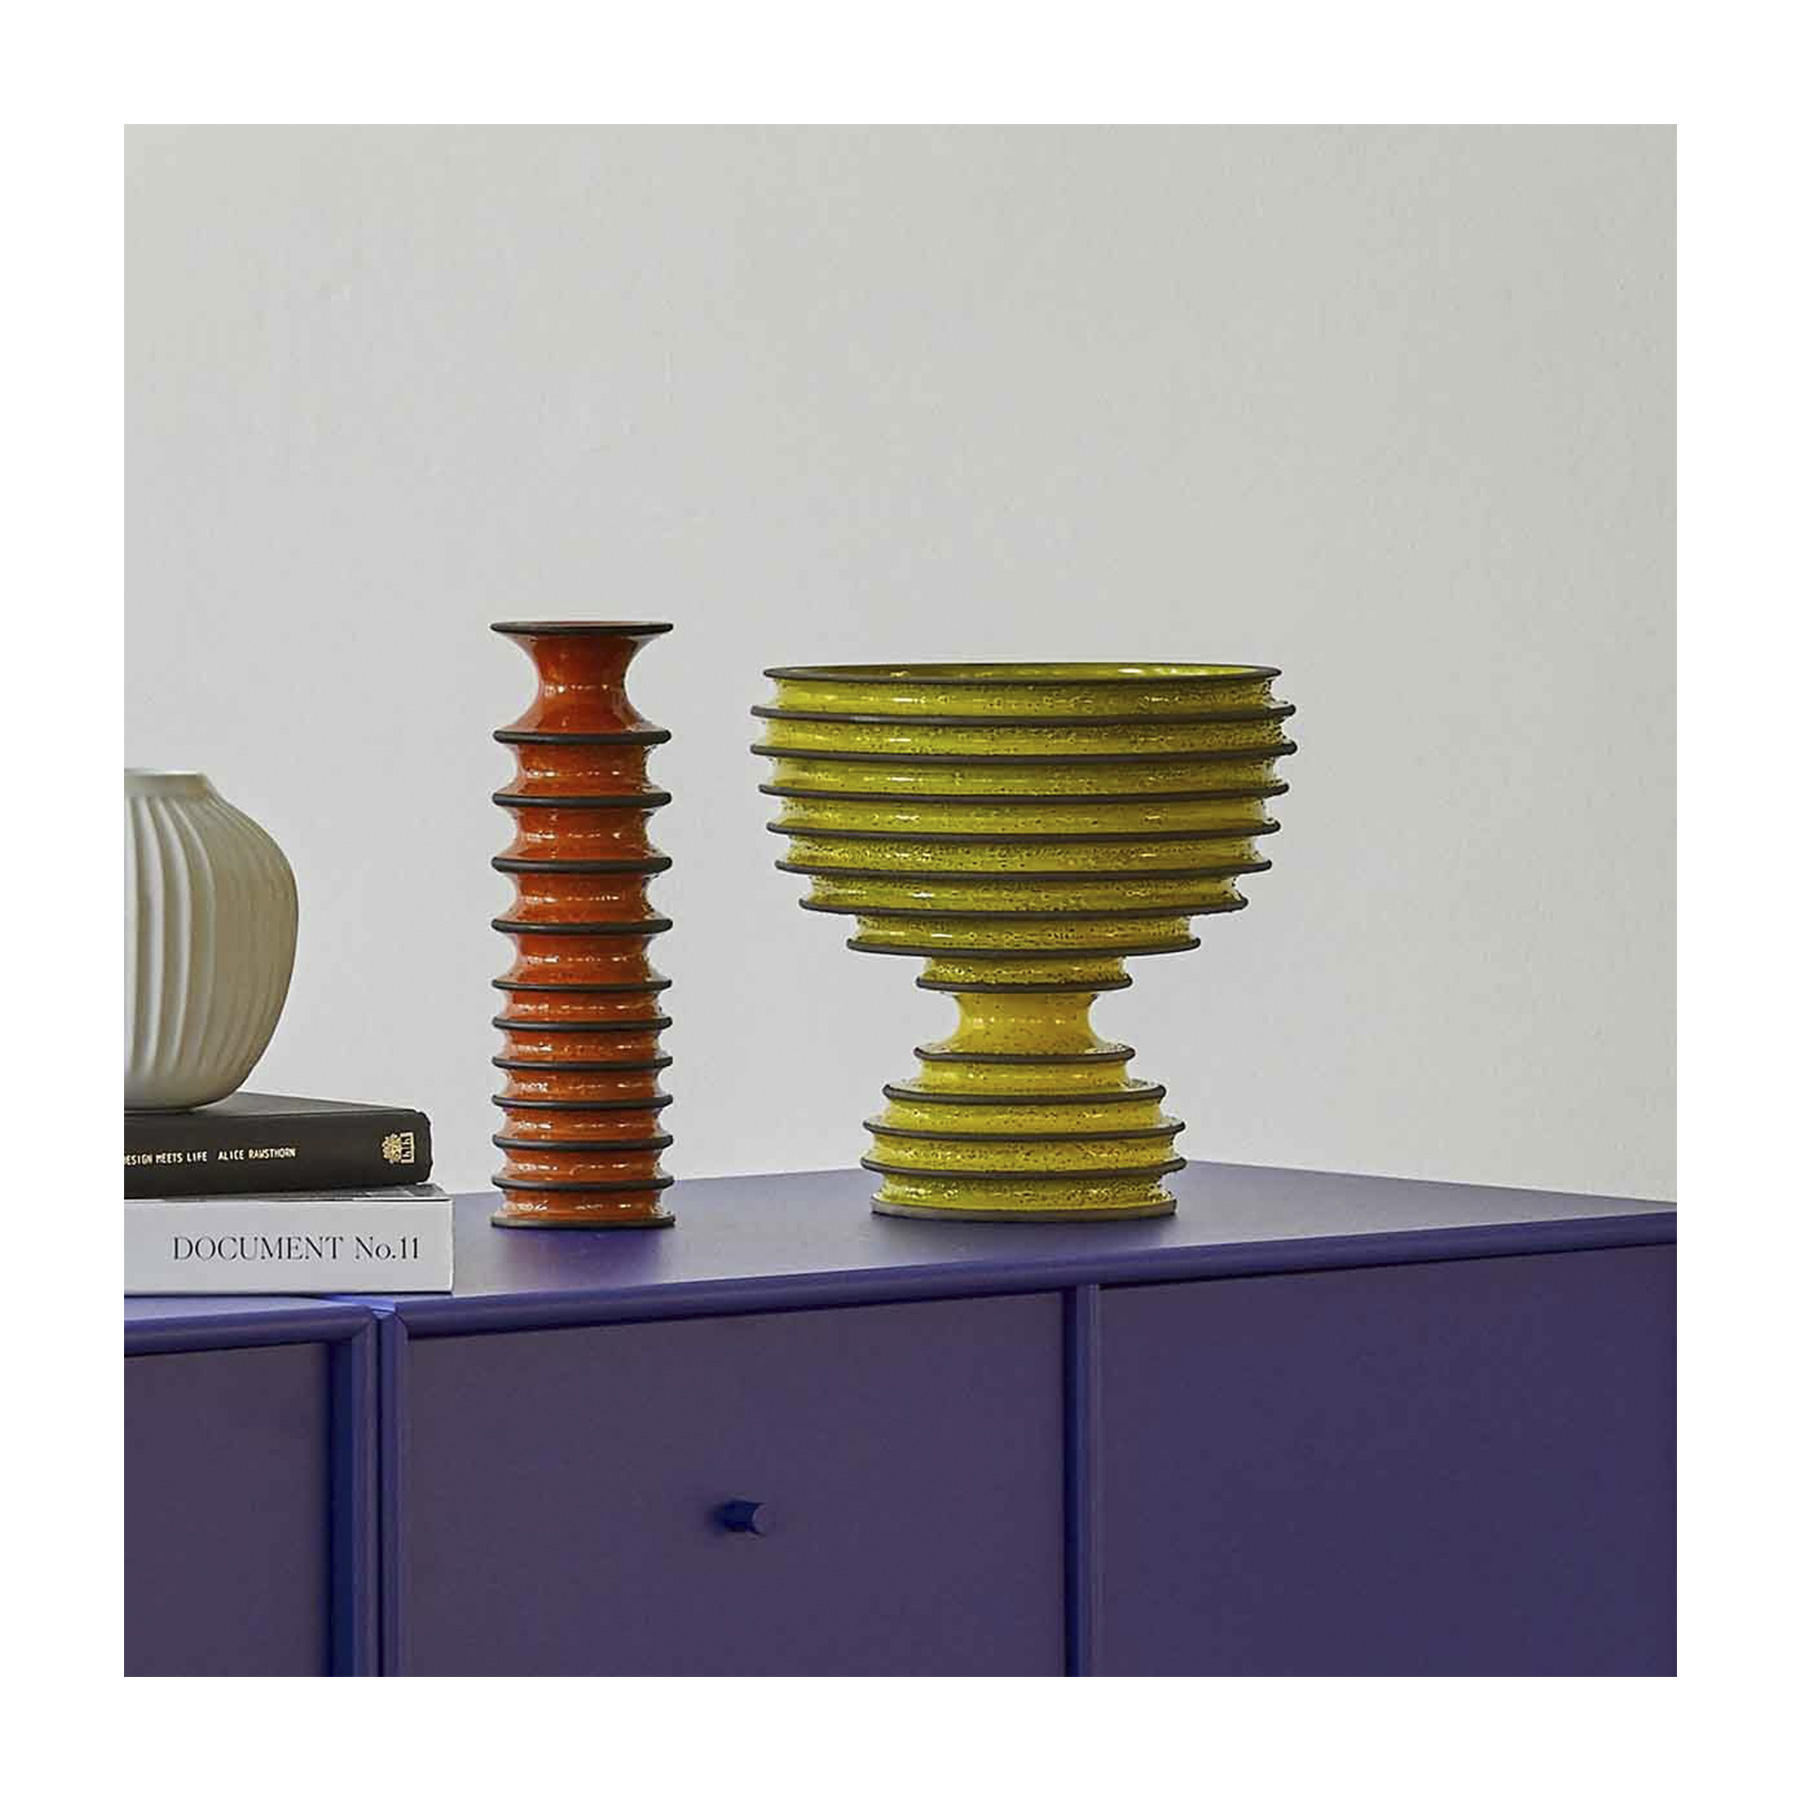 Revolver Orange Goblet - A traditional design dressed in a stylish contemporary suite, this ceramic goblet is part of the exclusive Revolver Collection, showcased at Milan Design Week in 2019. The hourglass-shaped, orange-hued silhouette features a spacious bowl resting on a convex base, both distinguished by a deeply ribbed texture accented by brown edges.    Matter of Stuff